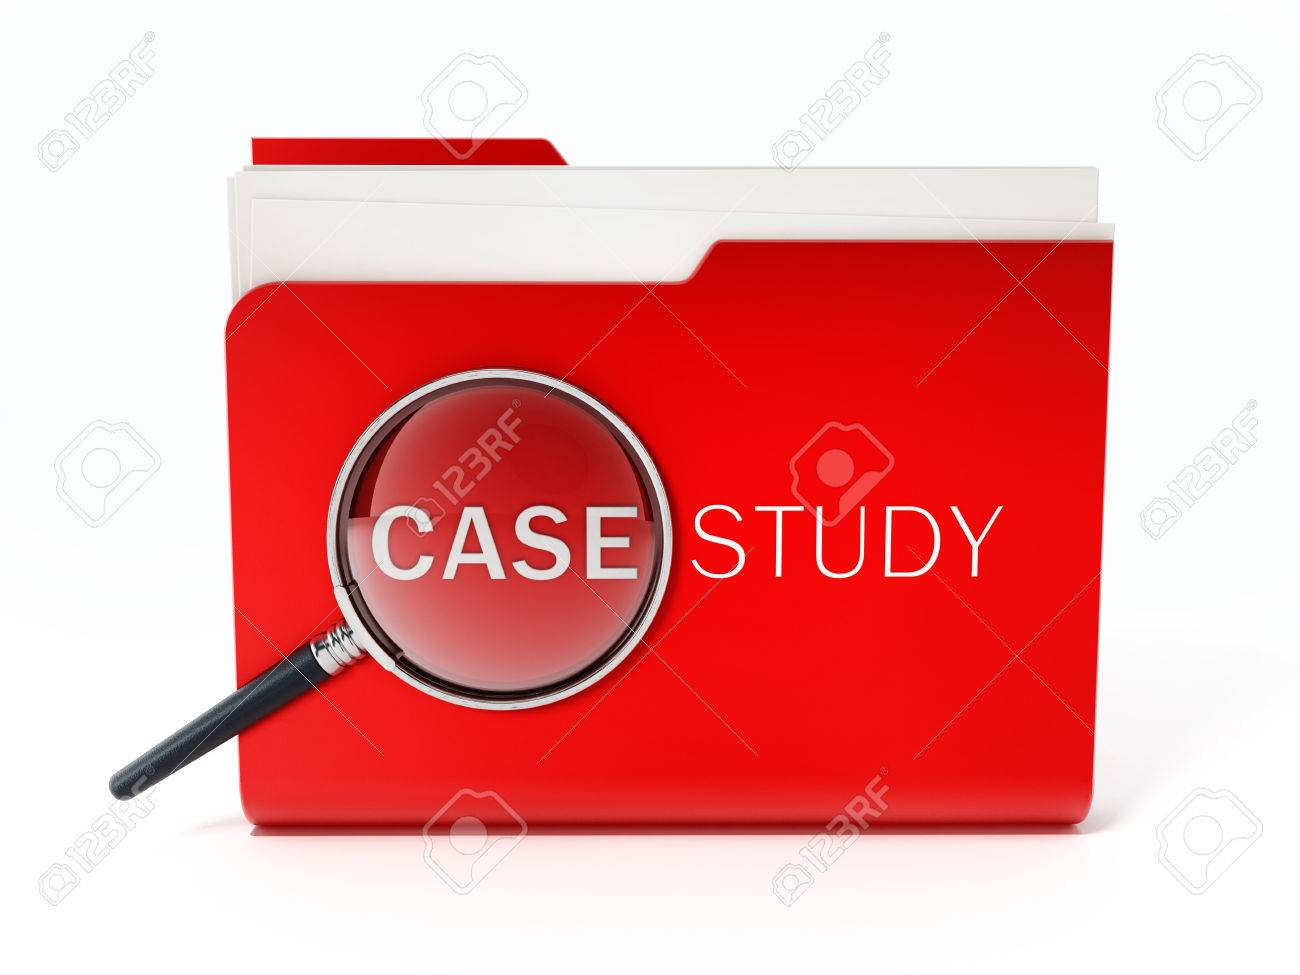 Case study text under magnifying glass standing on red folder. 3D illustration. Stock Illustration - 59003370